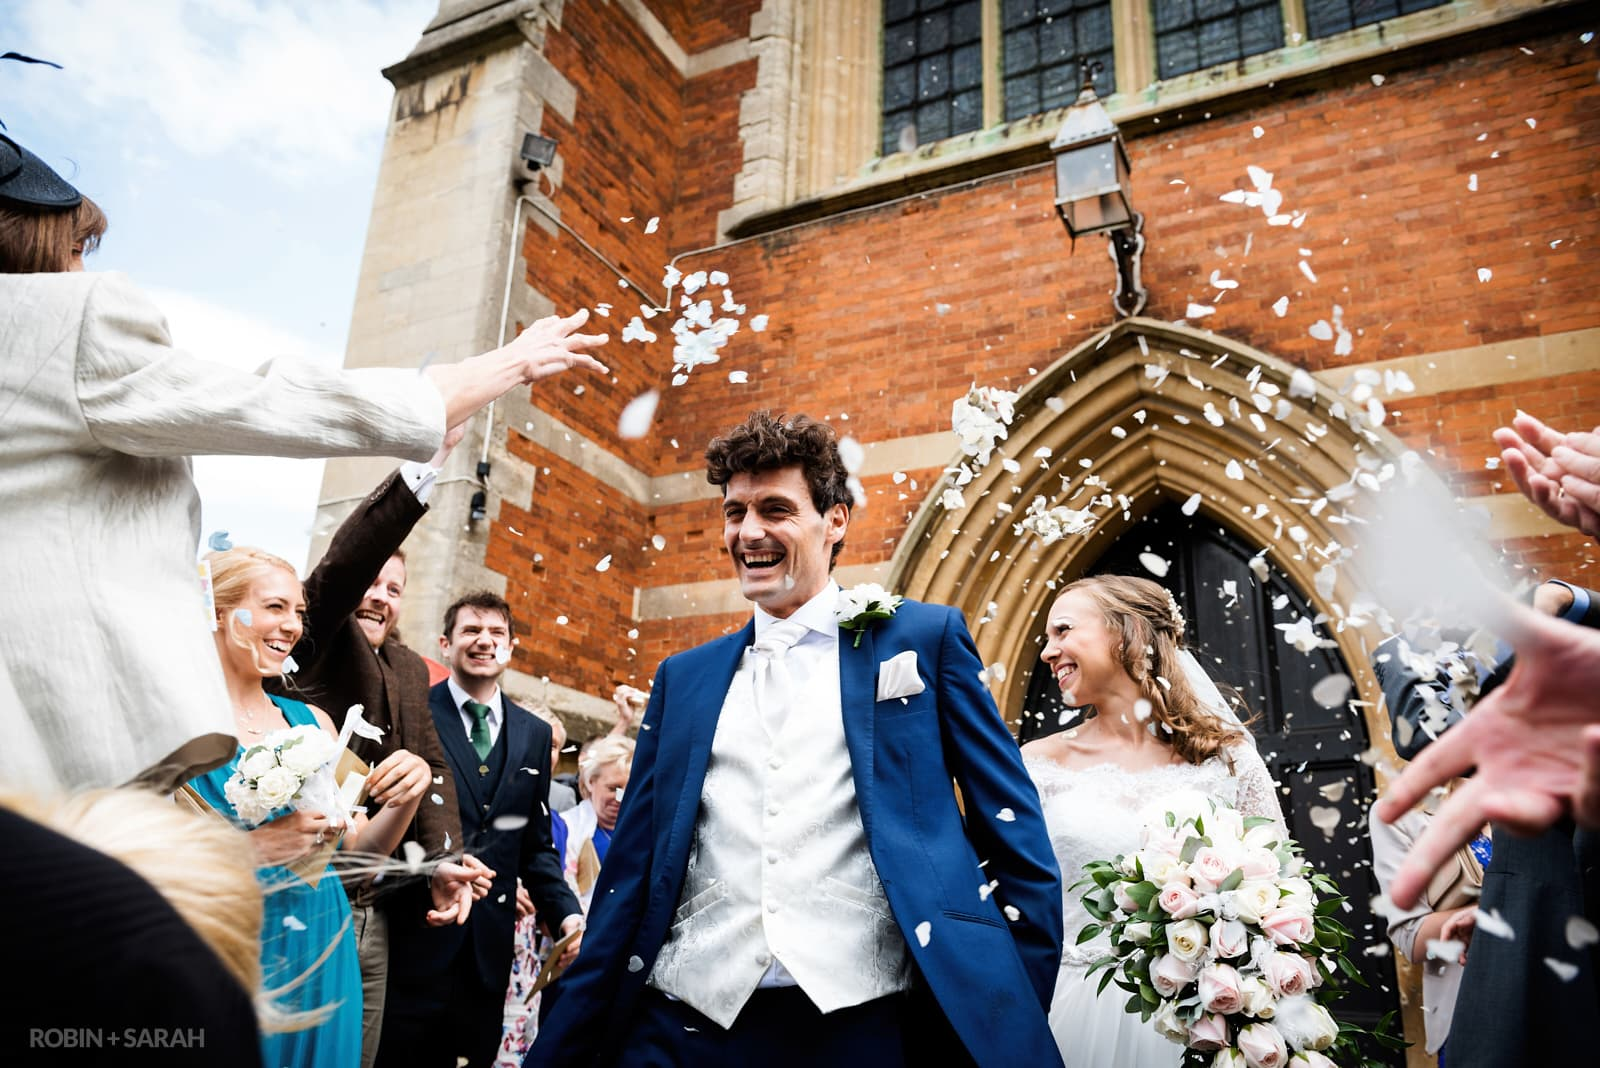 Bride and groom walk through confetti thrown by guests outside church